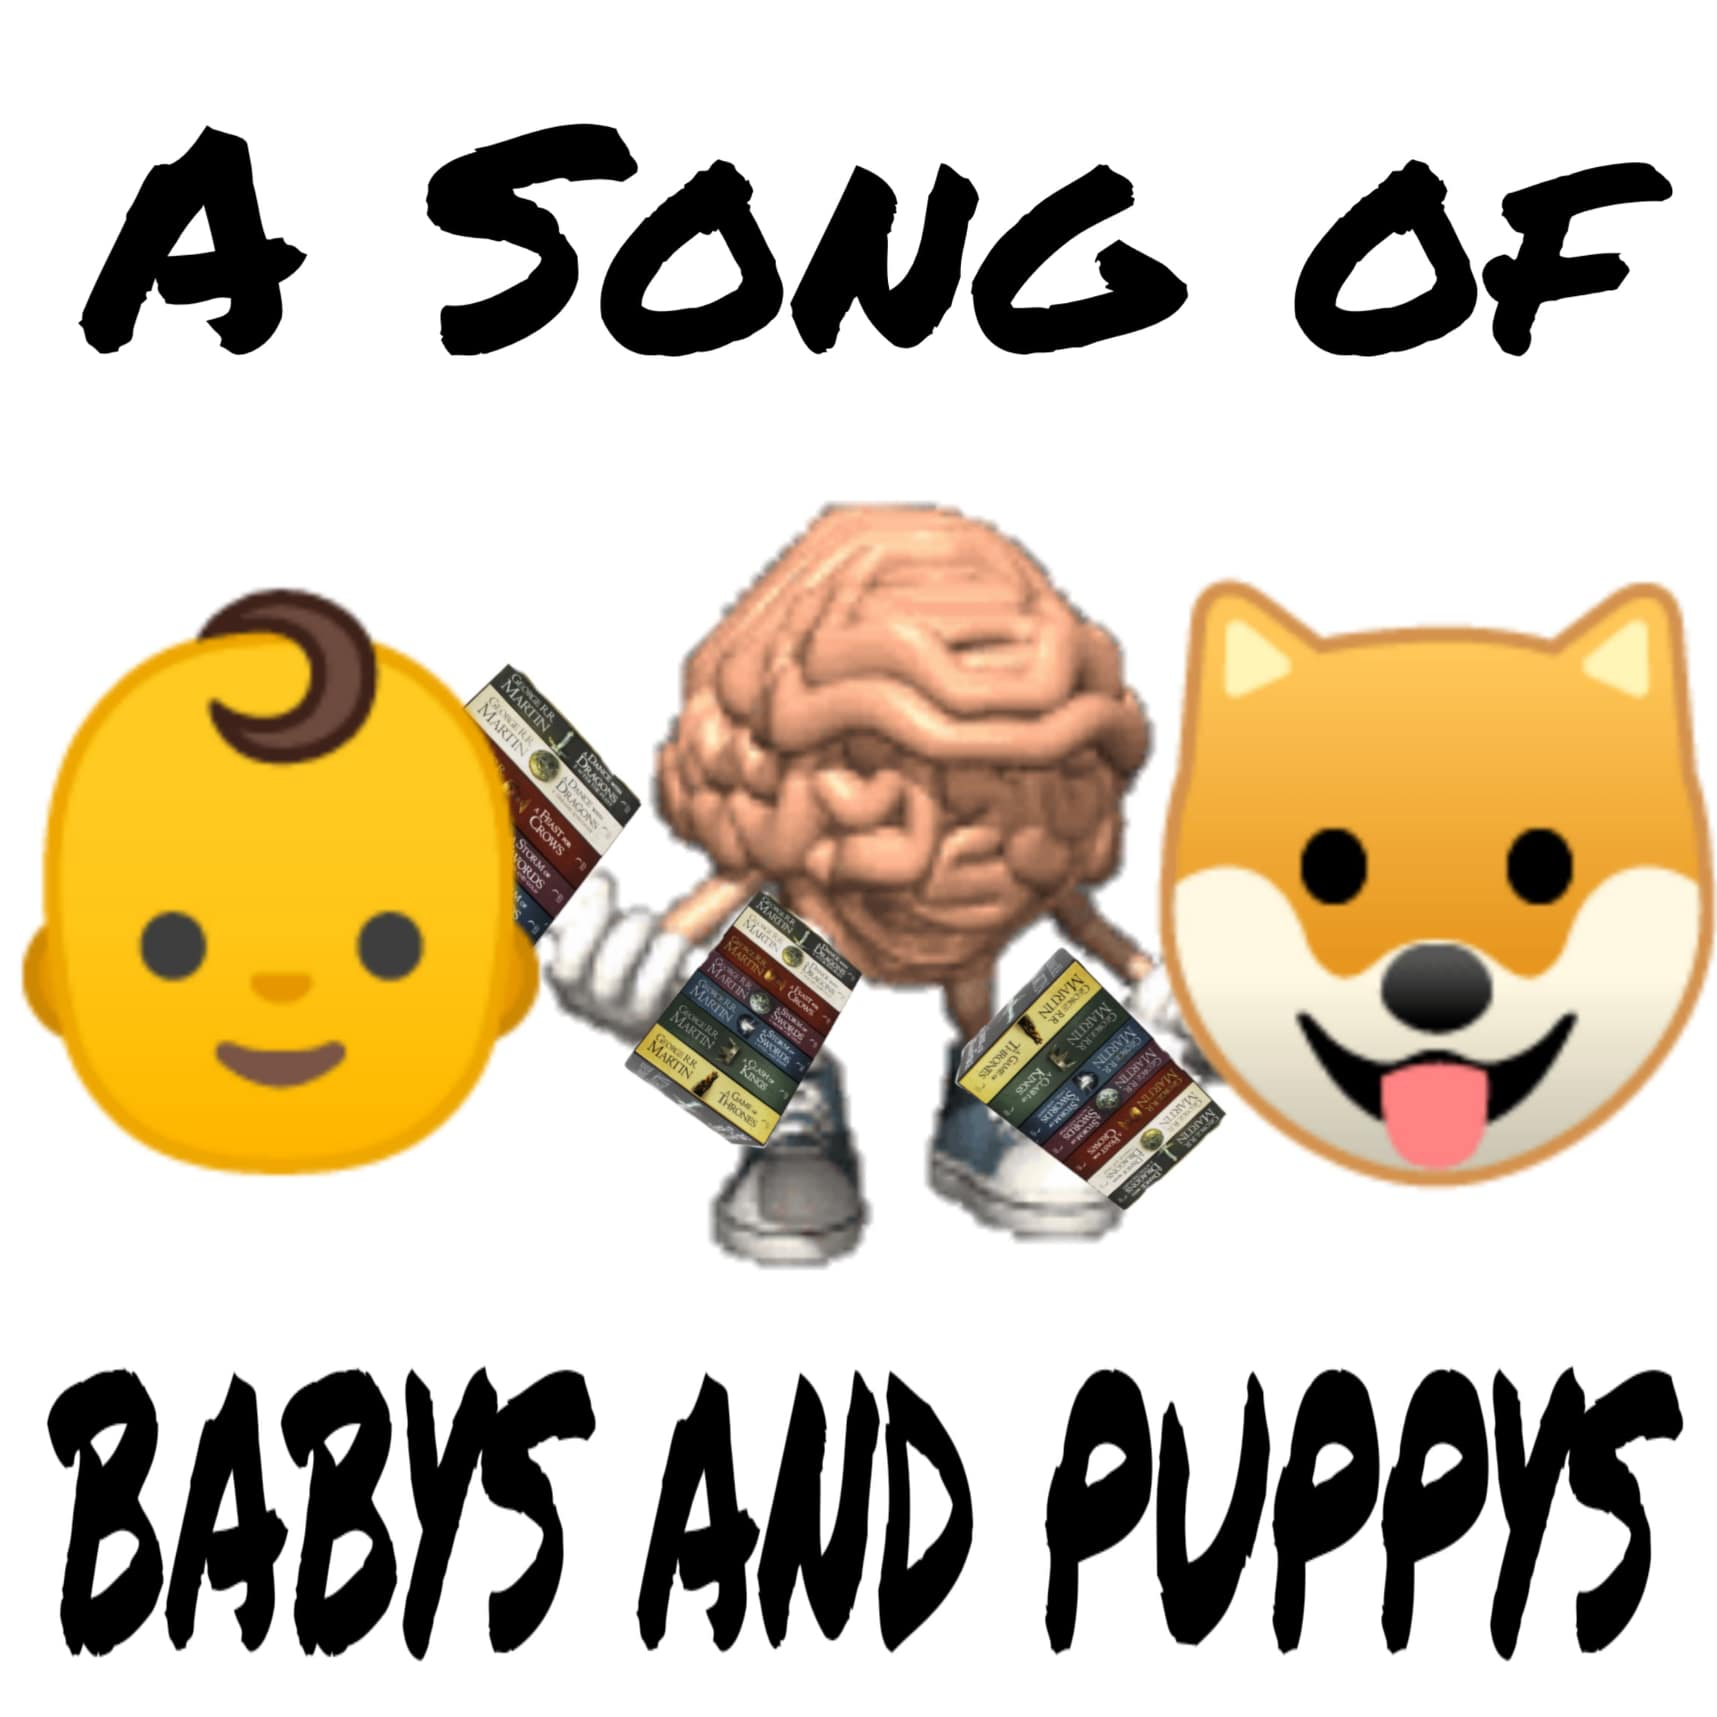 A Song of Babys and Puppys